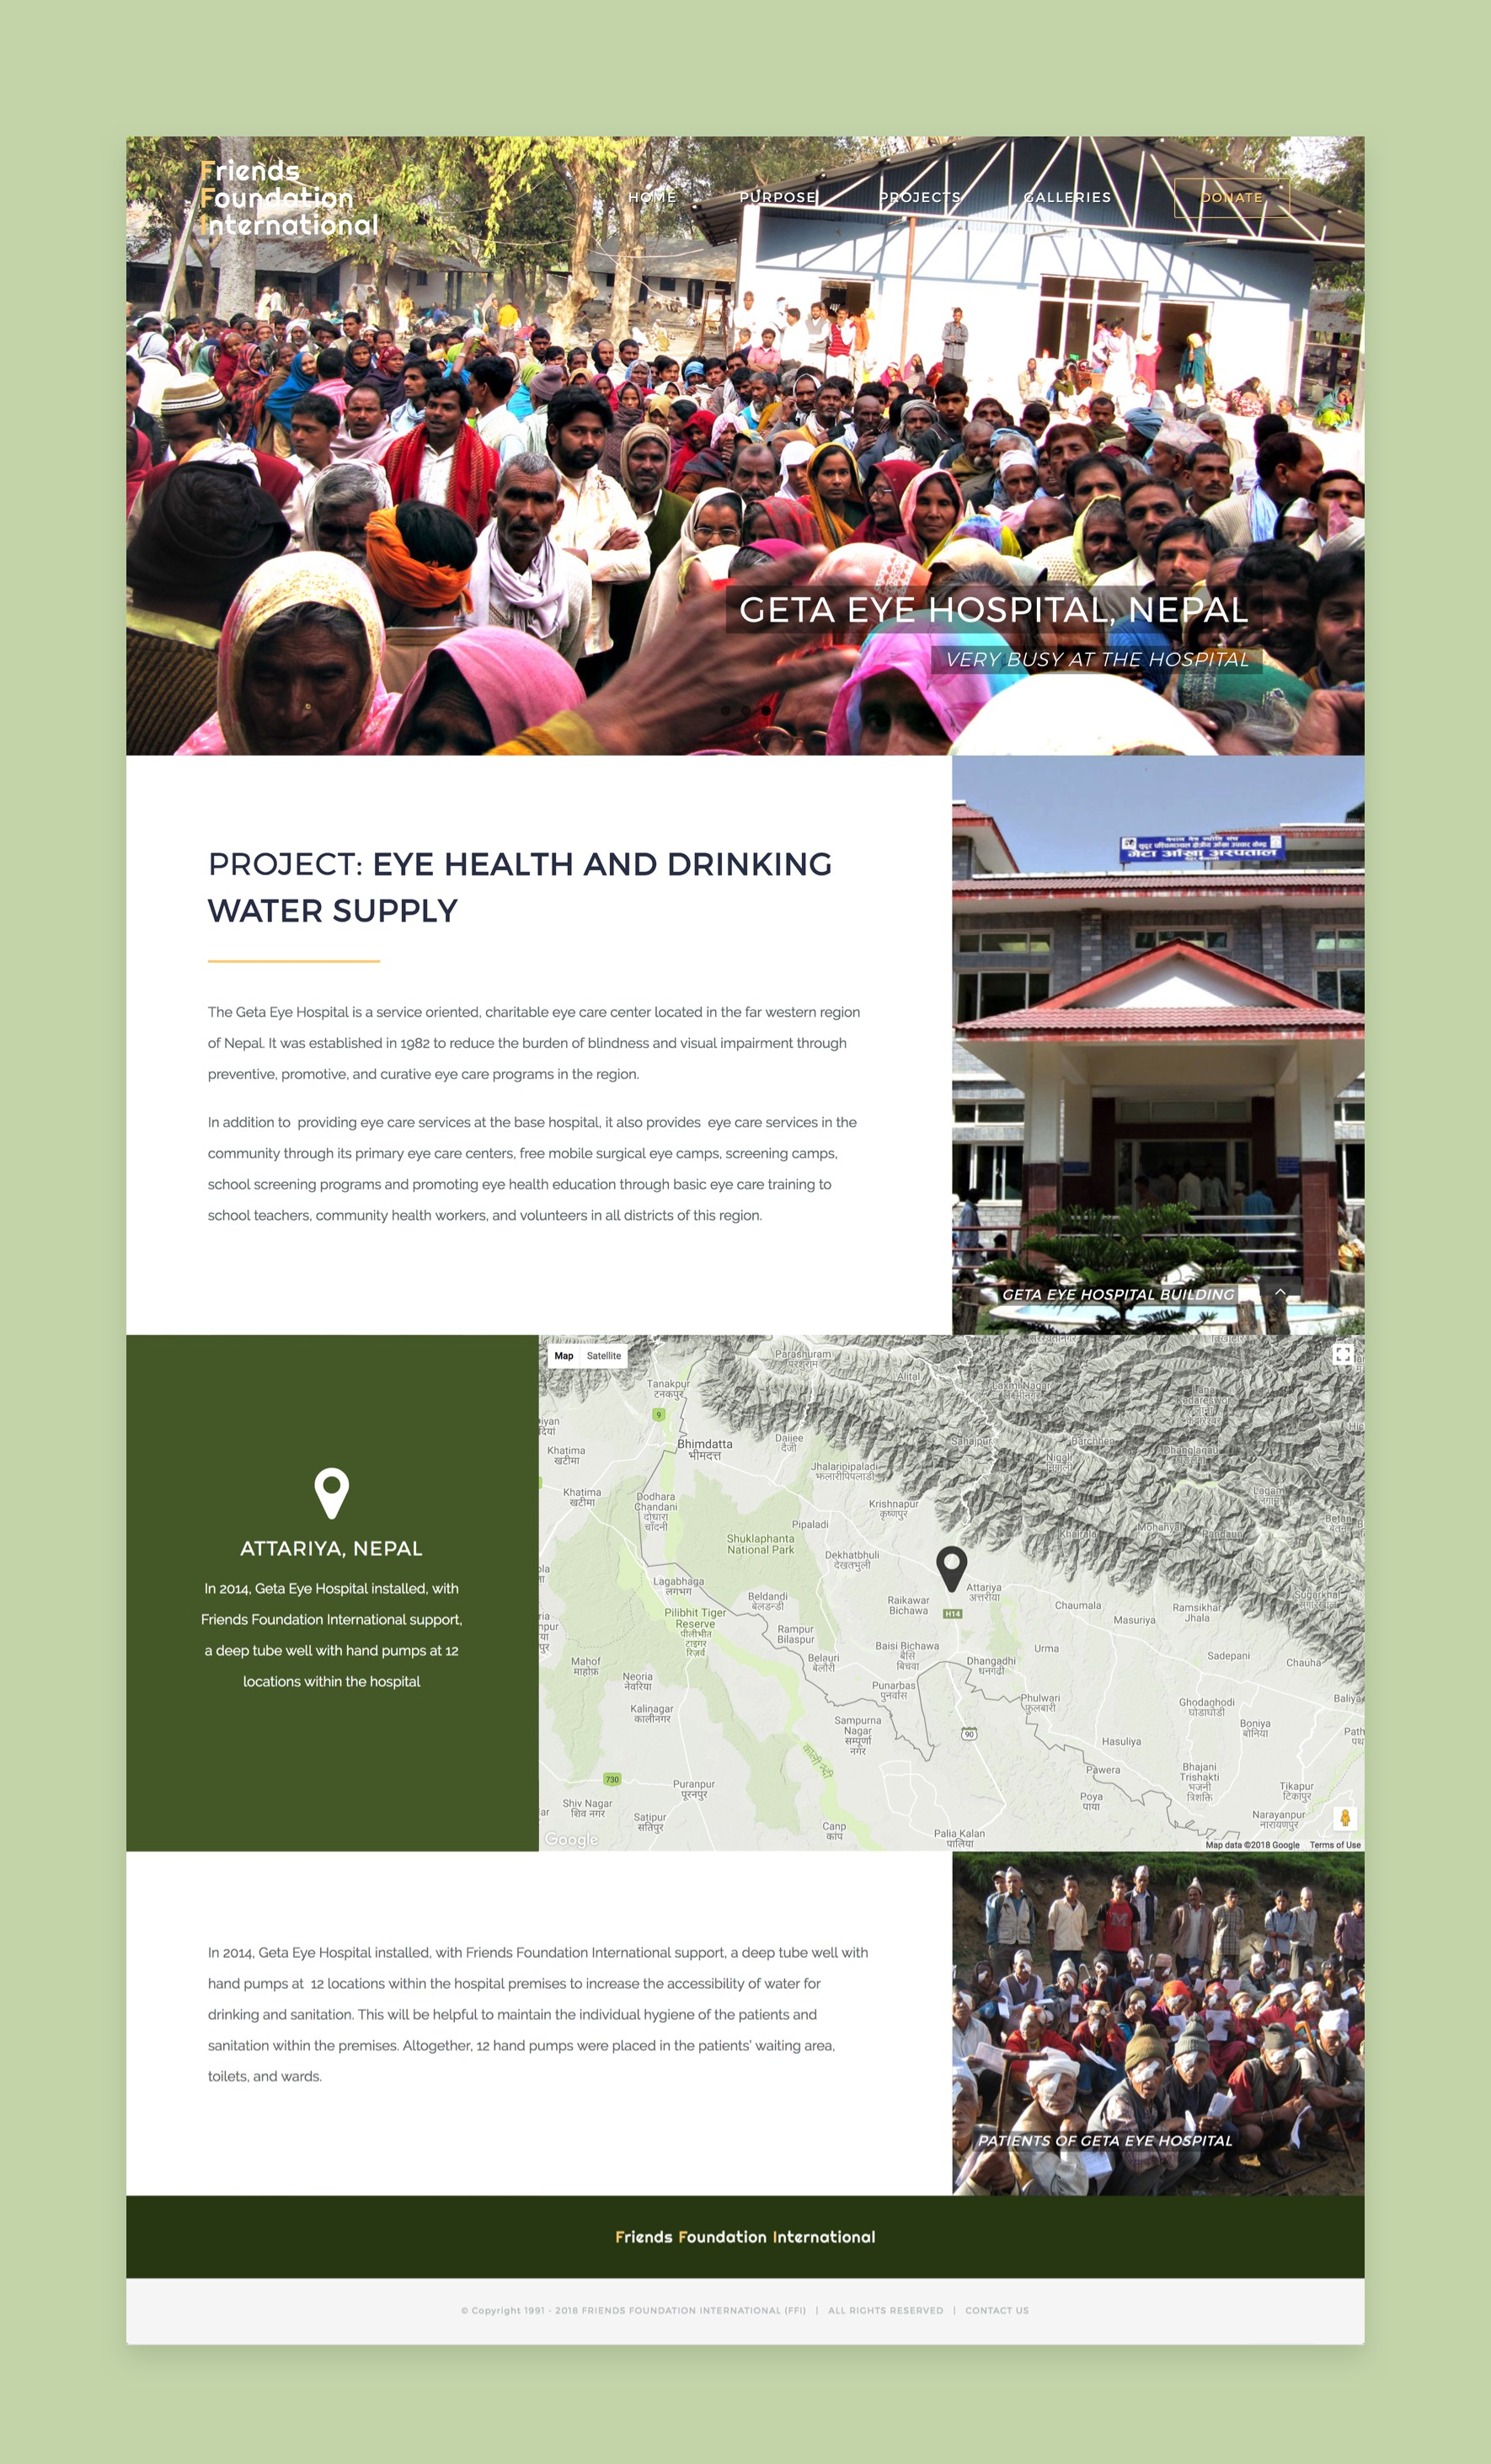 Project page of Friends Foundation International website